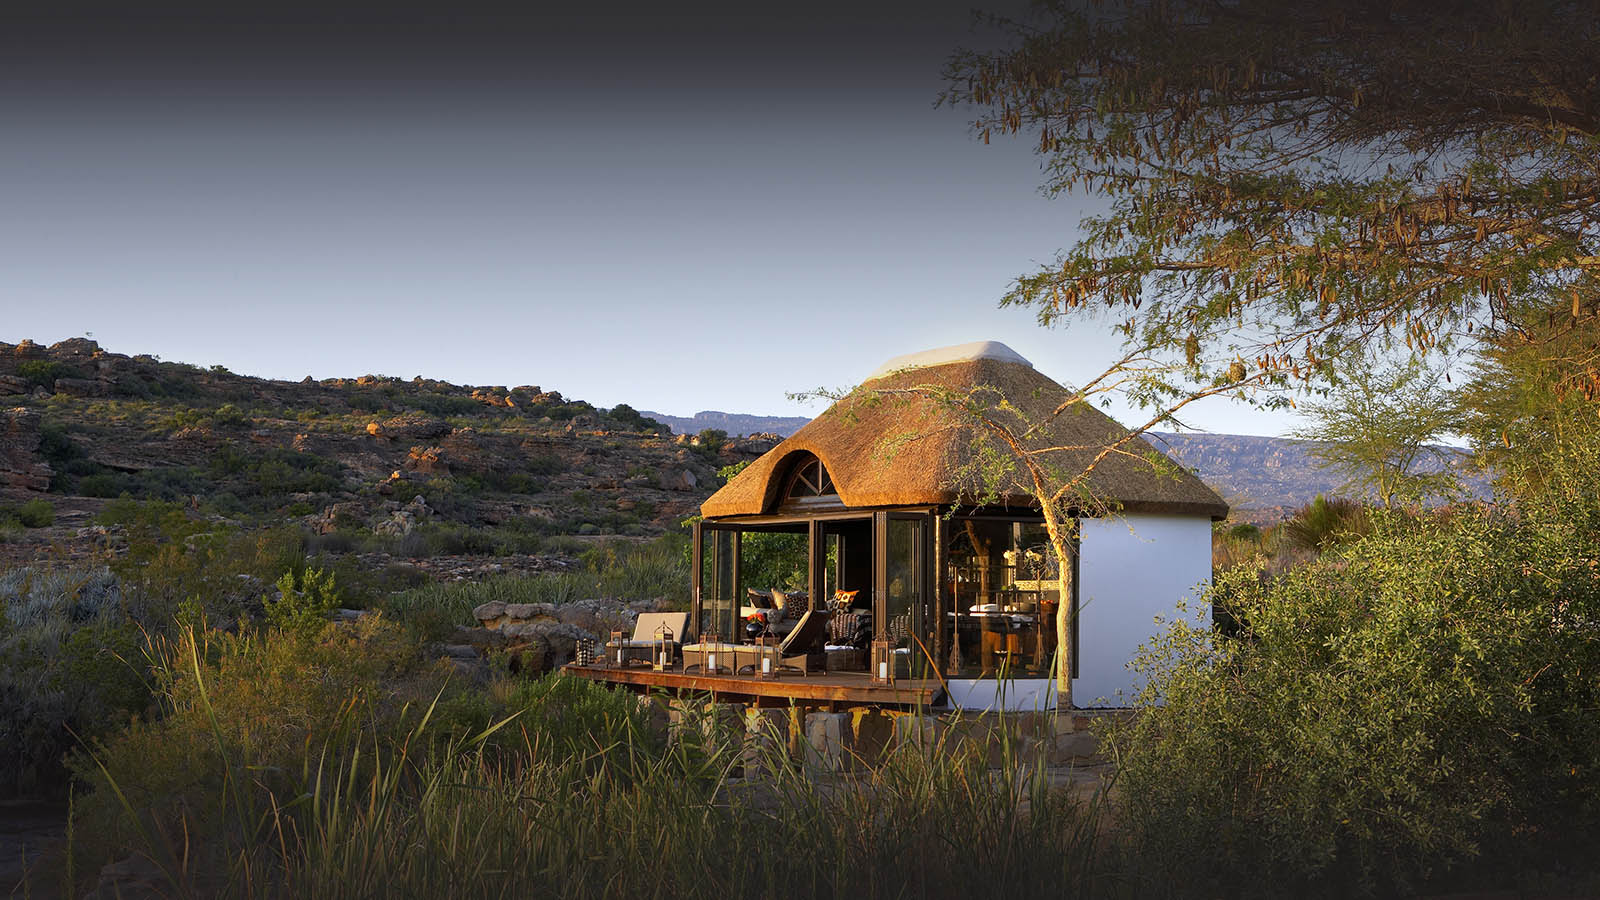 bushmans kloof winelands-lodges-south-africa-accommodation-zambia-in-style-cederberg-mountains-african-wilderness-ancient-artwork-spa